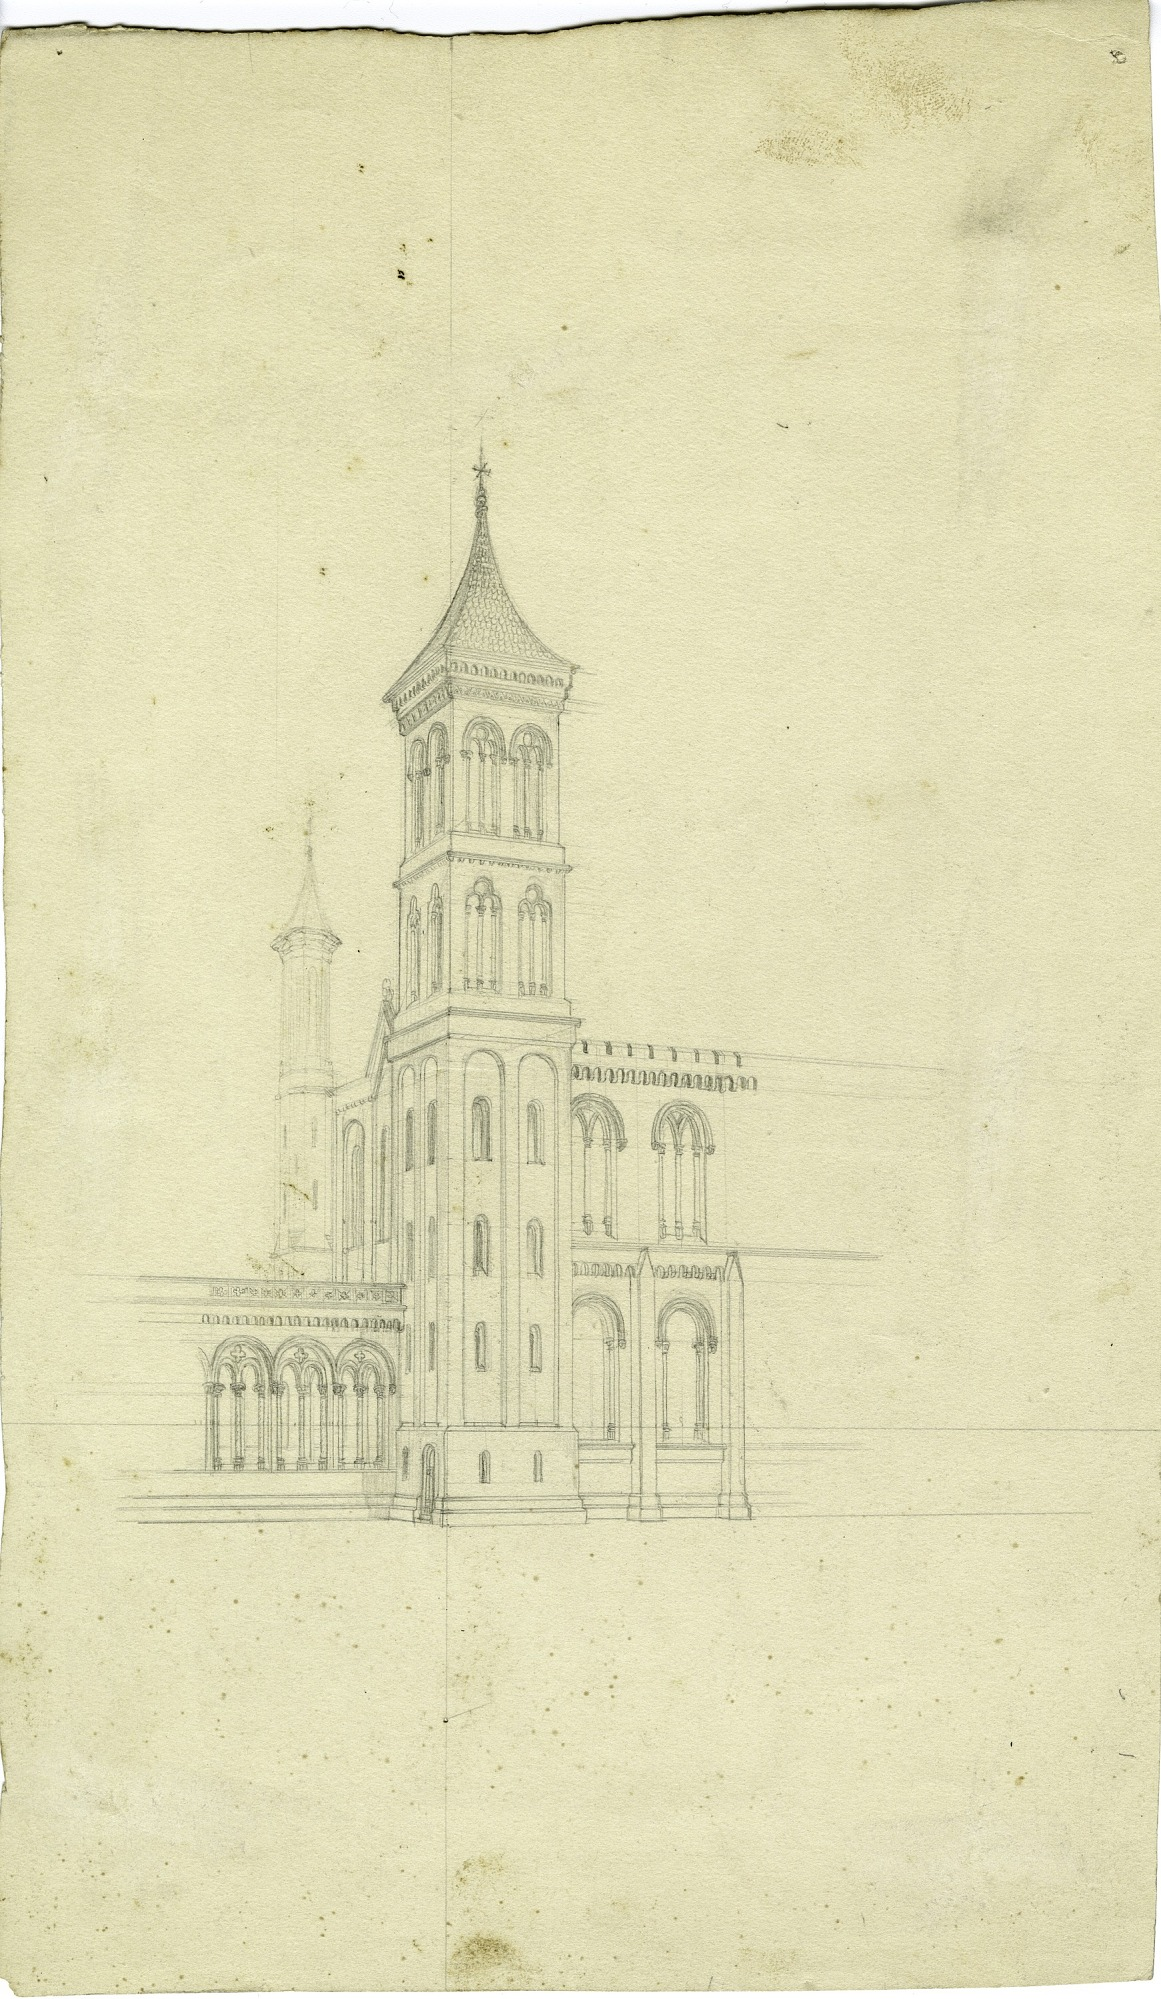 Smithsonian Institution Building, circa 1848